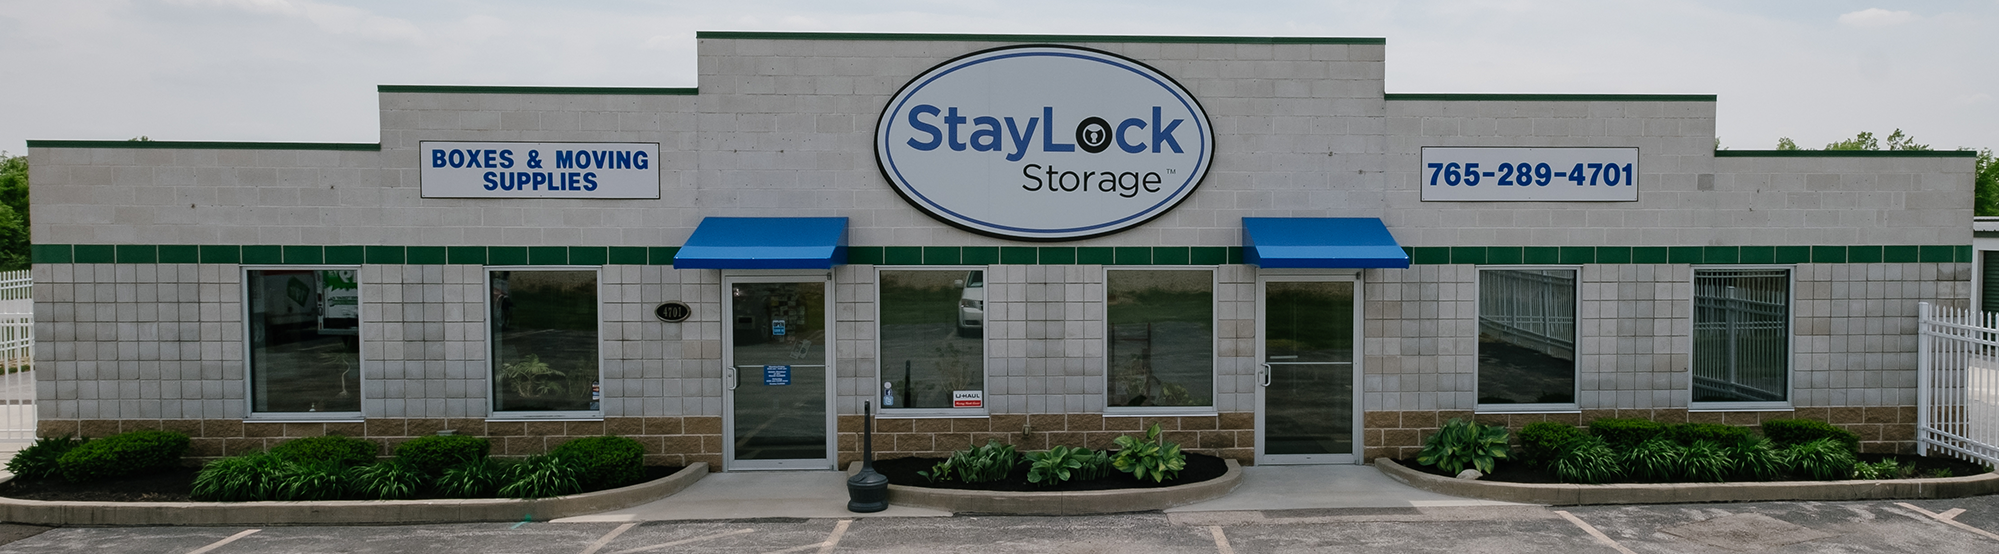 Self Storage StayLock in Muncie, IN